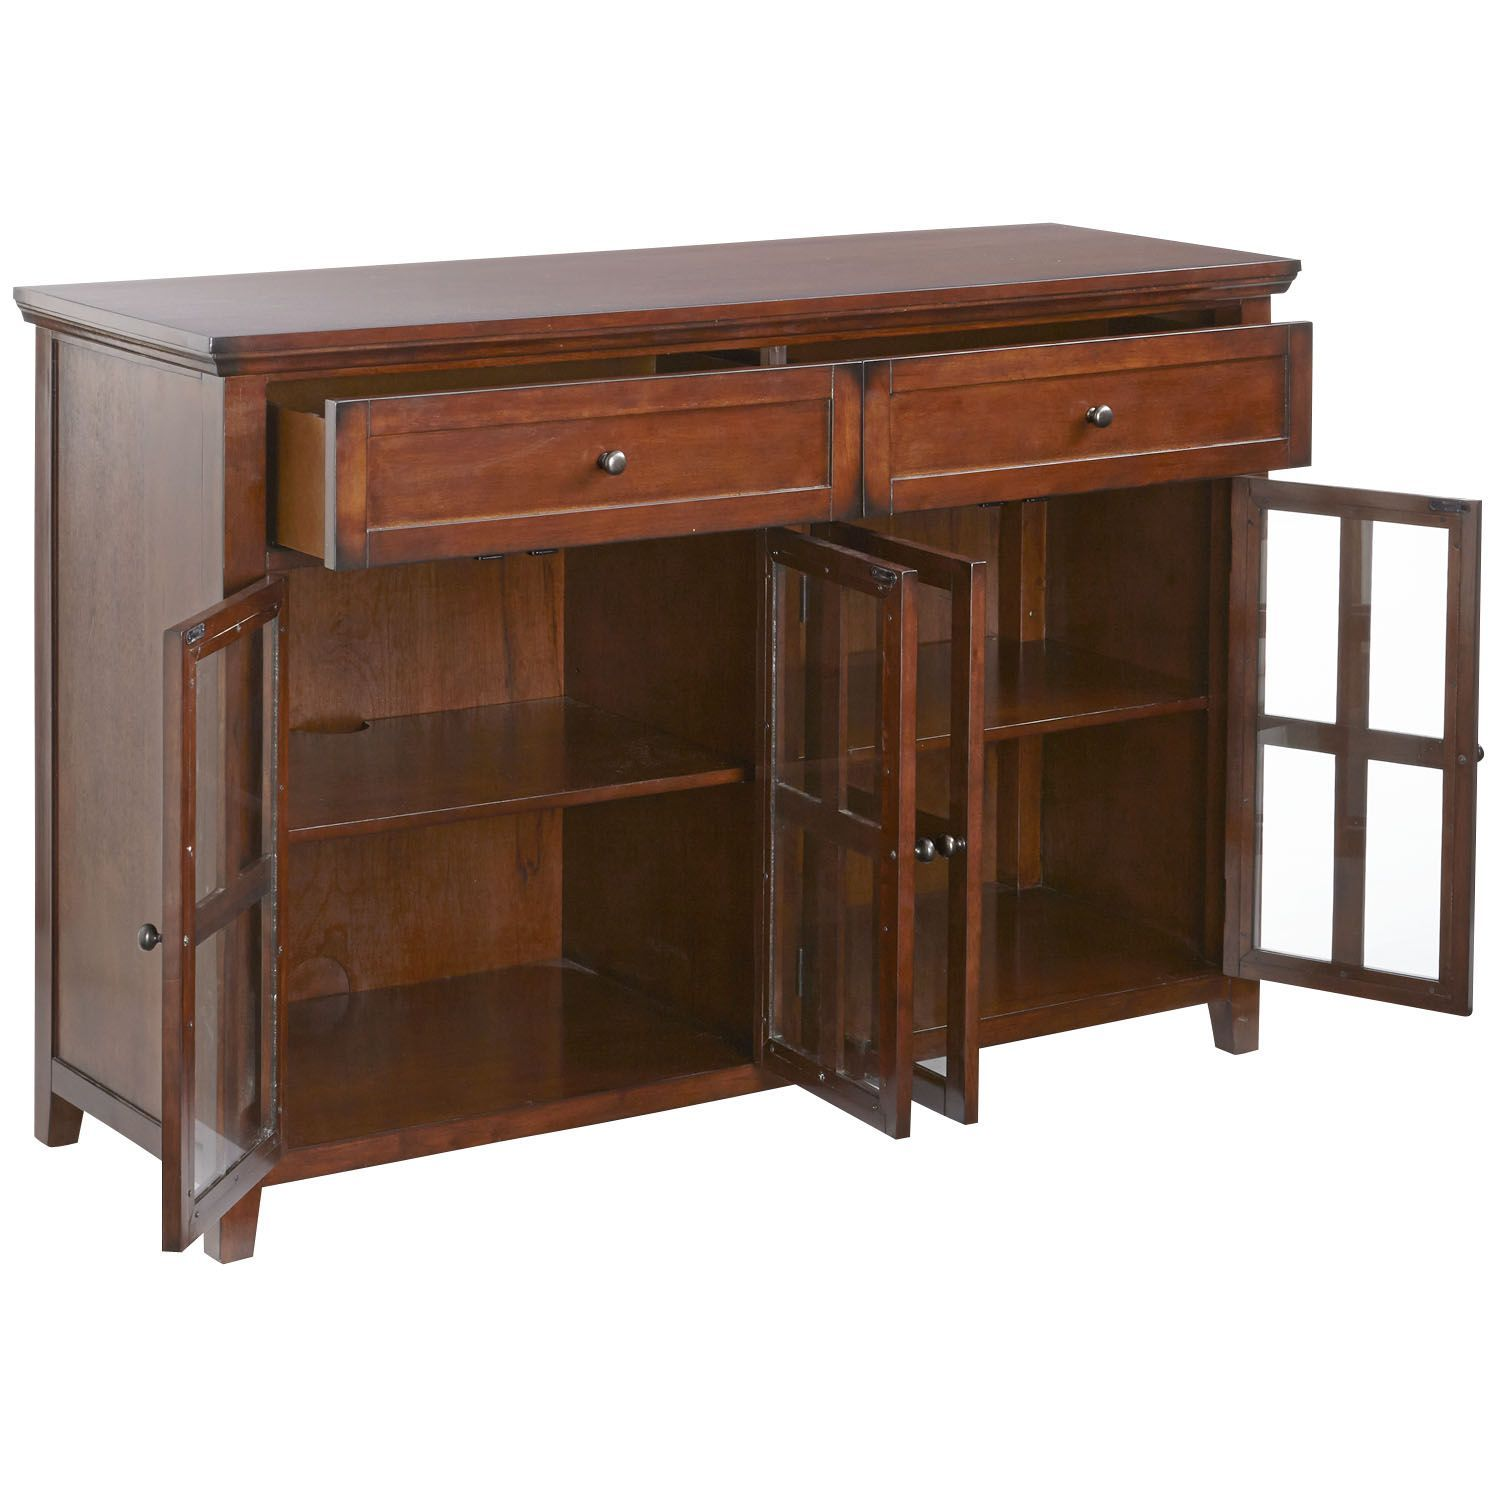 Paul schatz furniture portland or  Ronan Tobacco Brown Large Buffet Table  Buffet Brown and Products